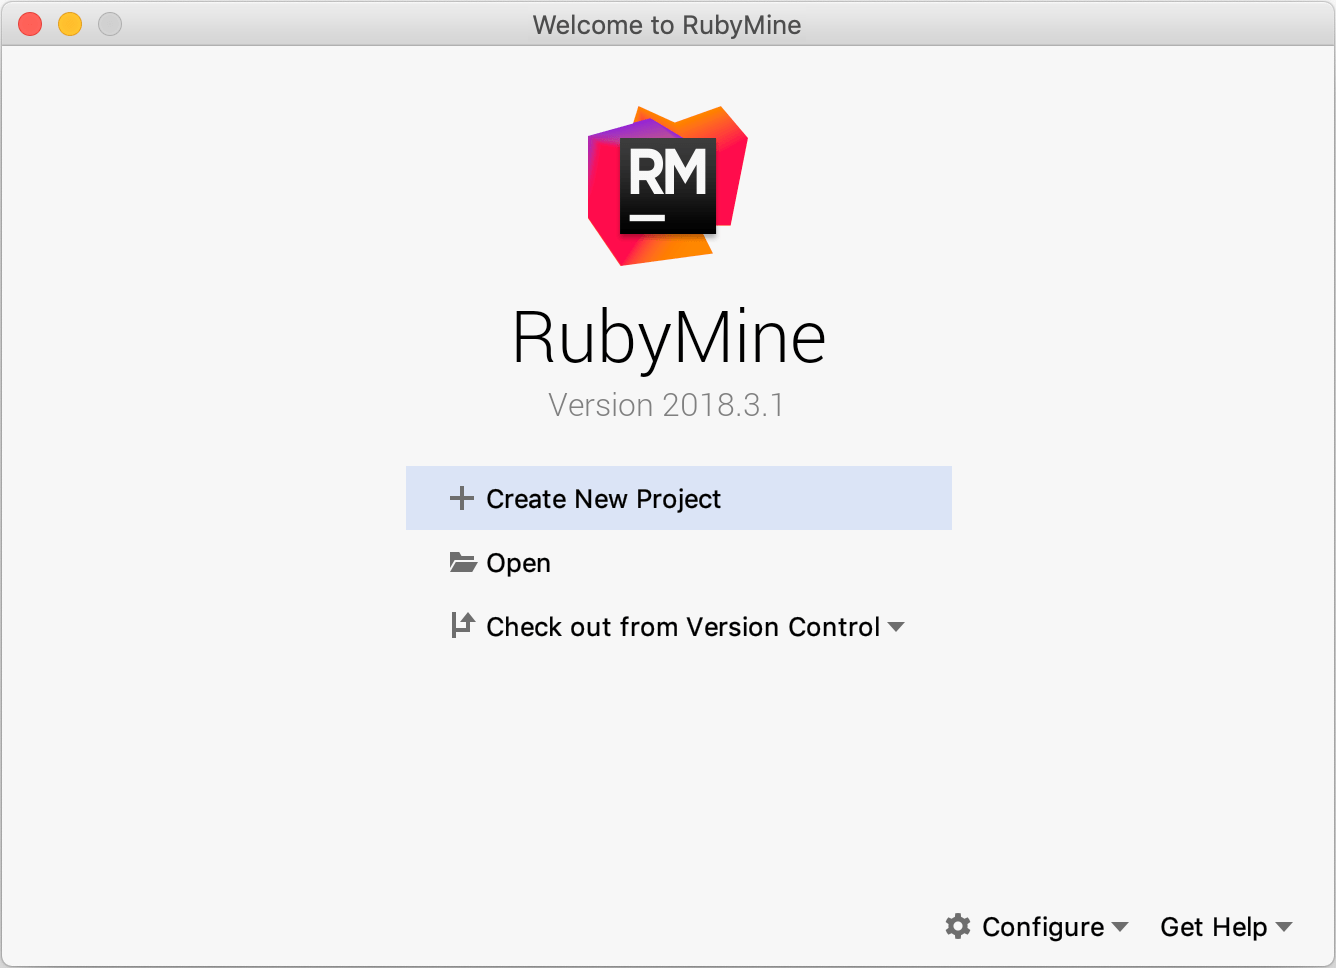 Creating and running your first Ruby project - Help | RubyMine